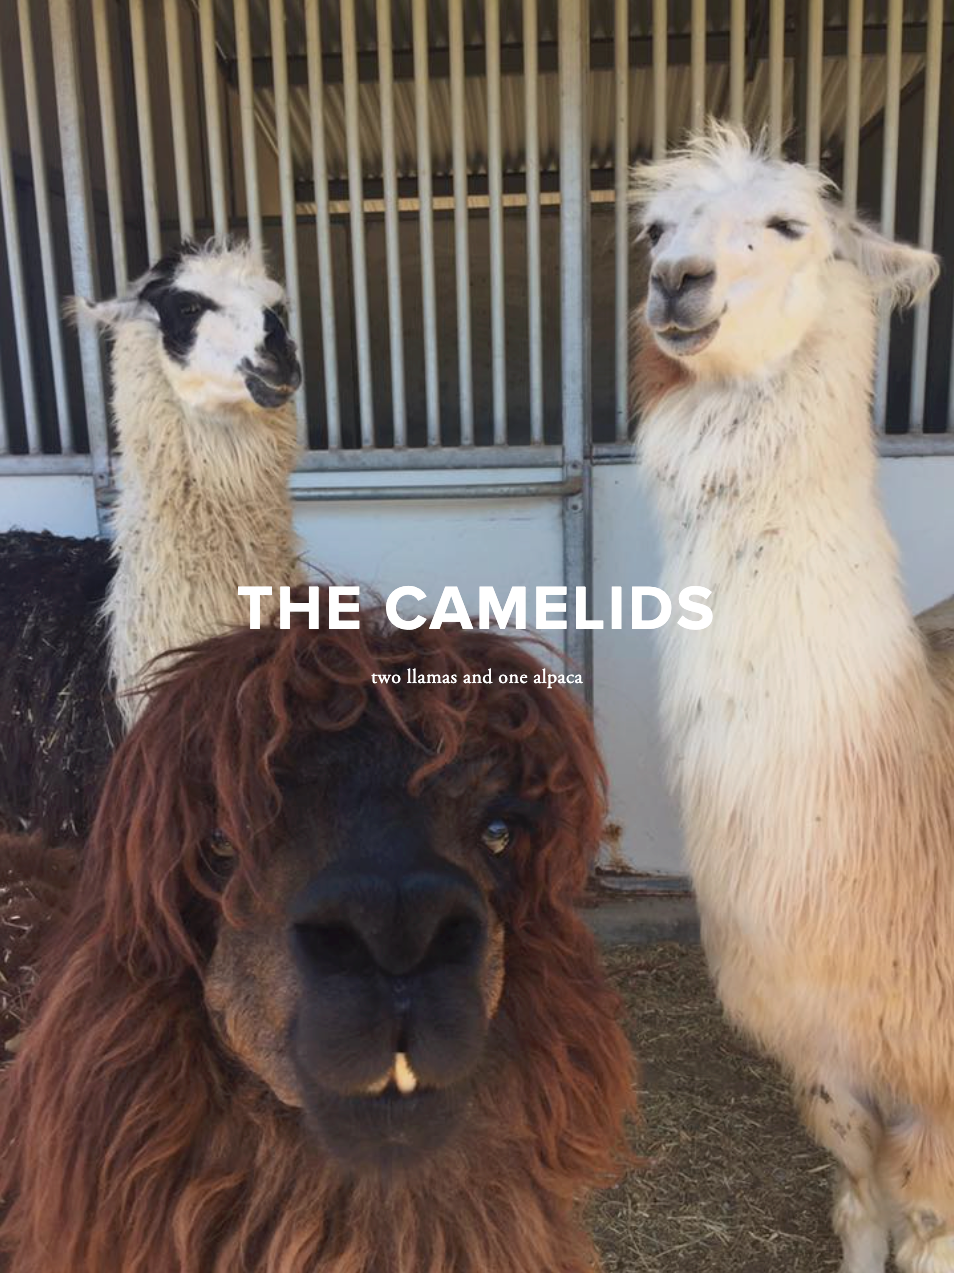 The camelids: two llamas and one alpaca